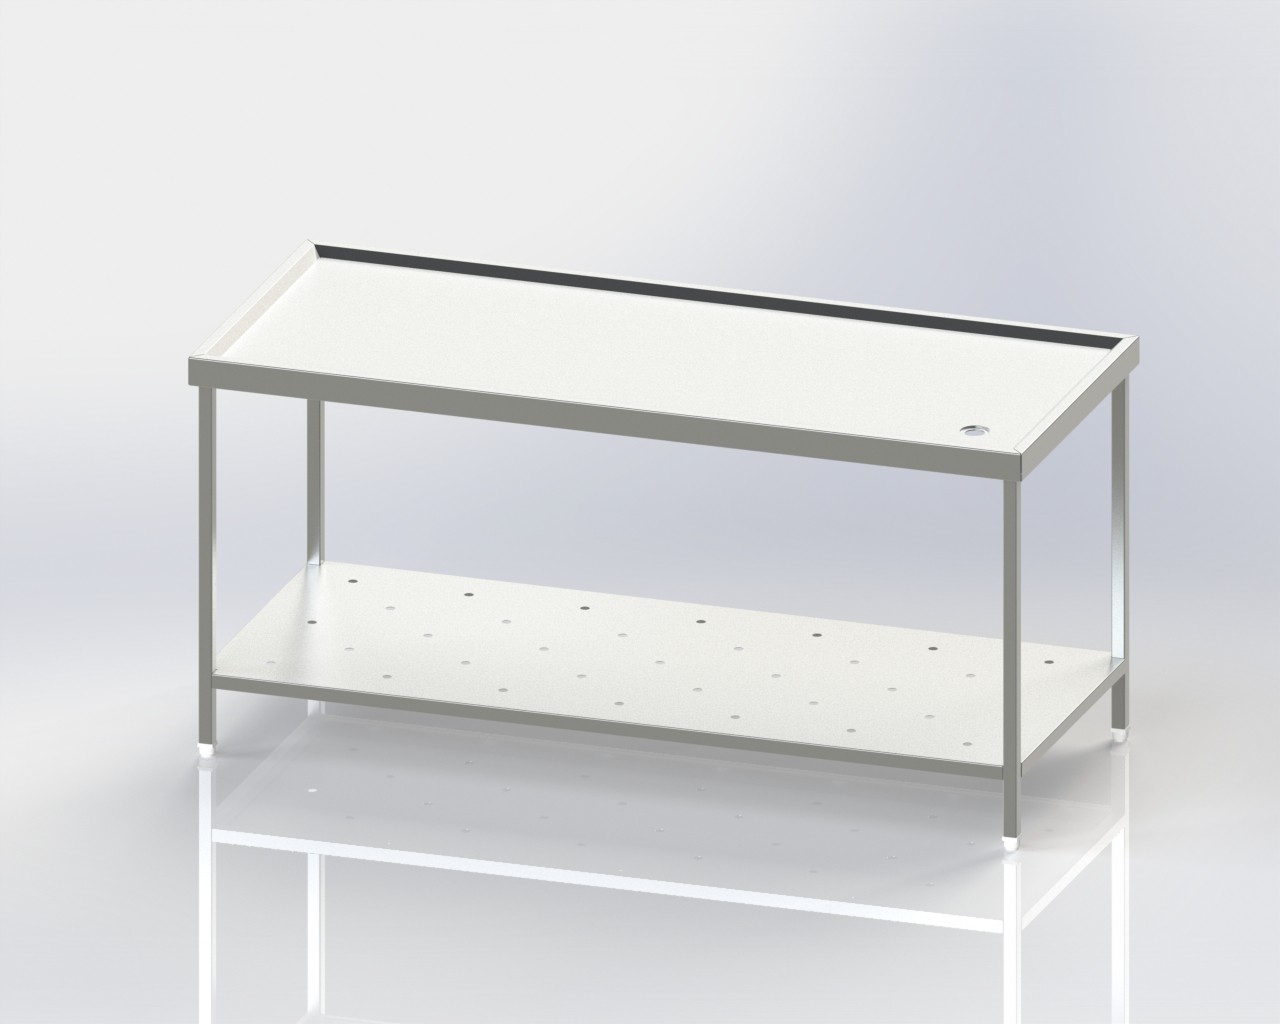 Clean Dish Table-Peforated Shelf